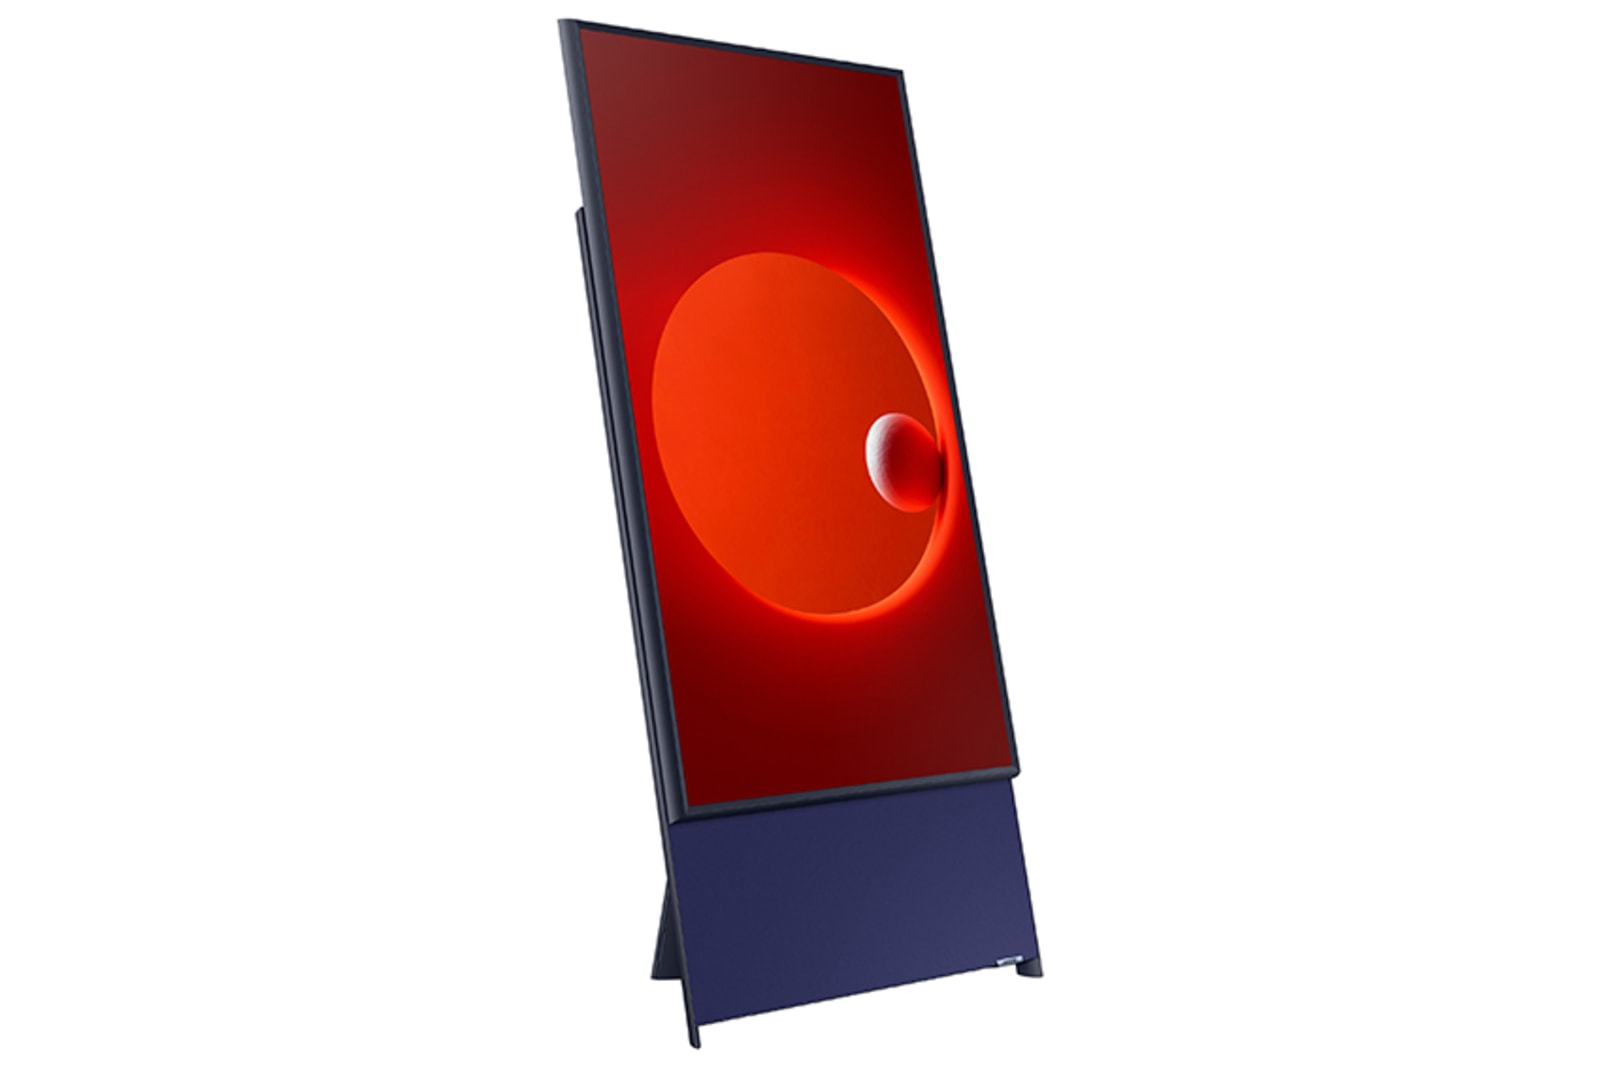 Samsung Sero vertical TV